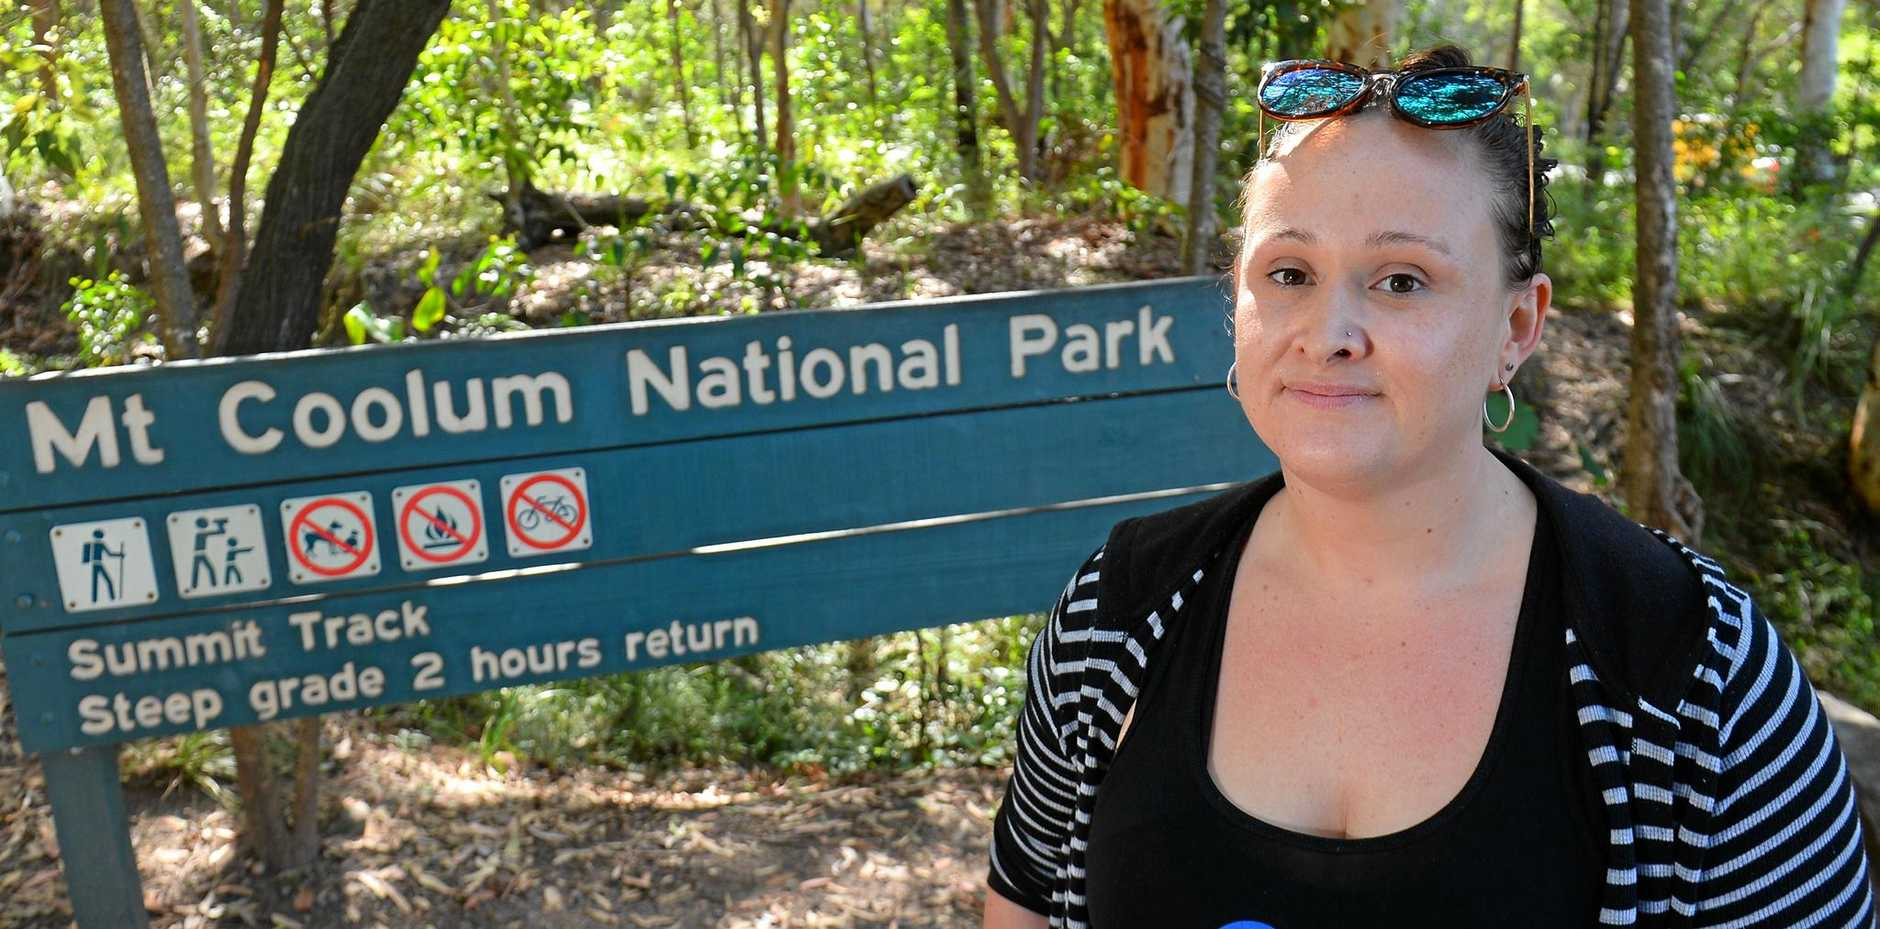 BODY SHAMERS: Kylie McGuigan is trying to find Tracey - a woman who was mercilessly mocked and photographed by two slim women as she tried to climb Mount Coolum for the first time on Wednesday.